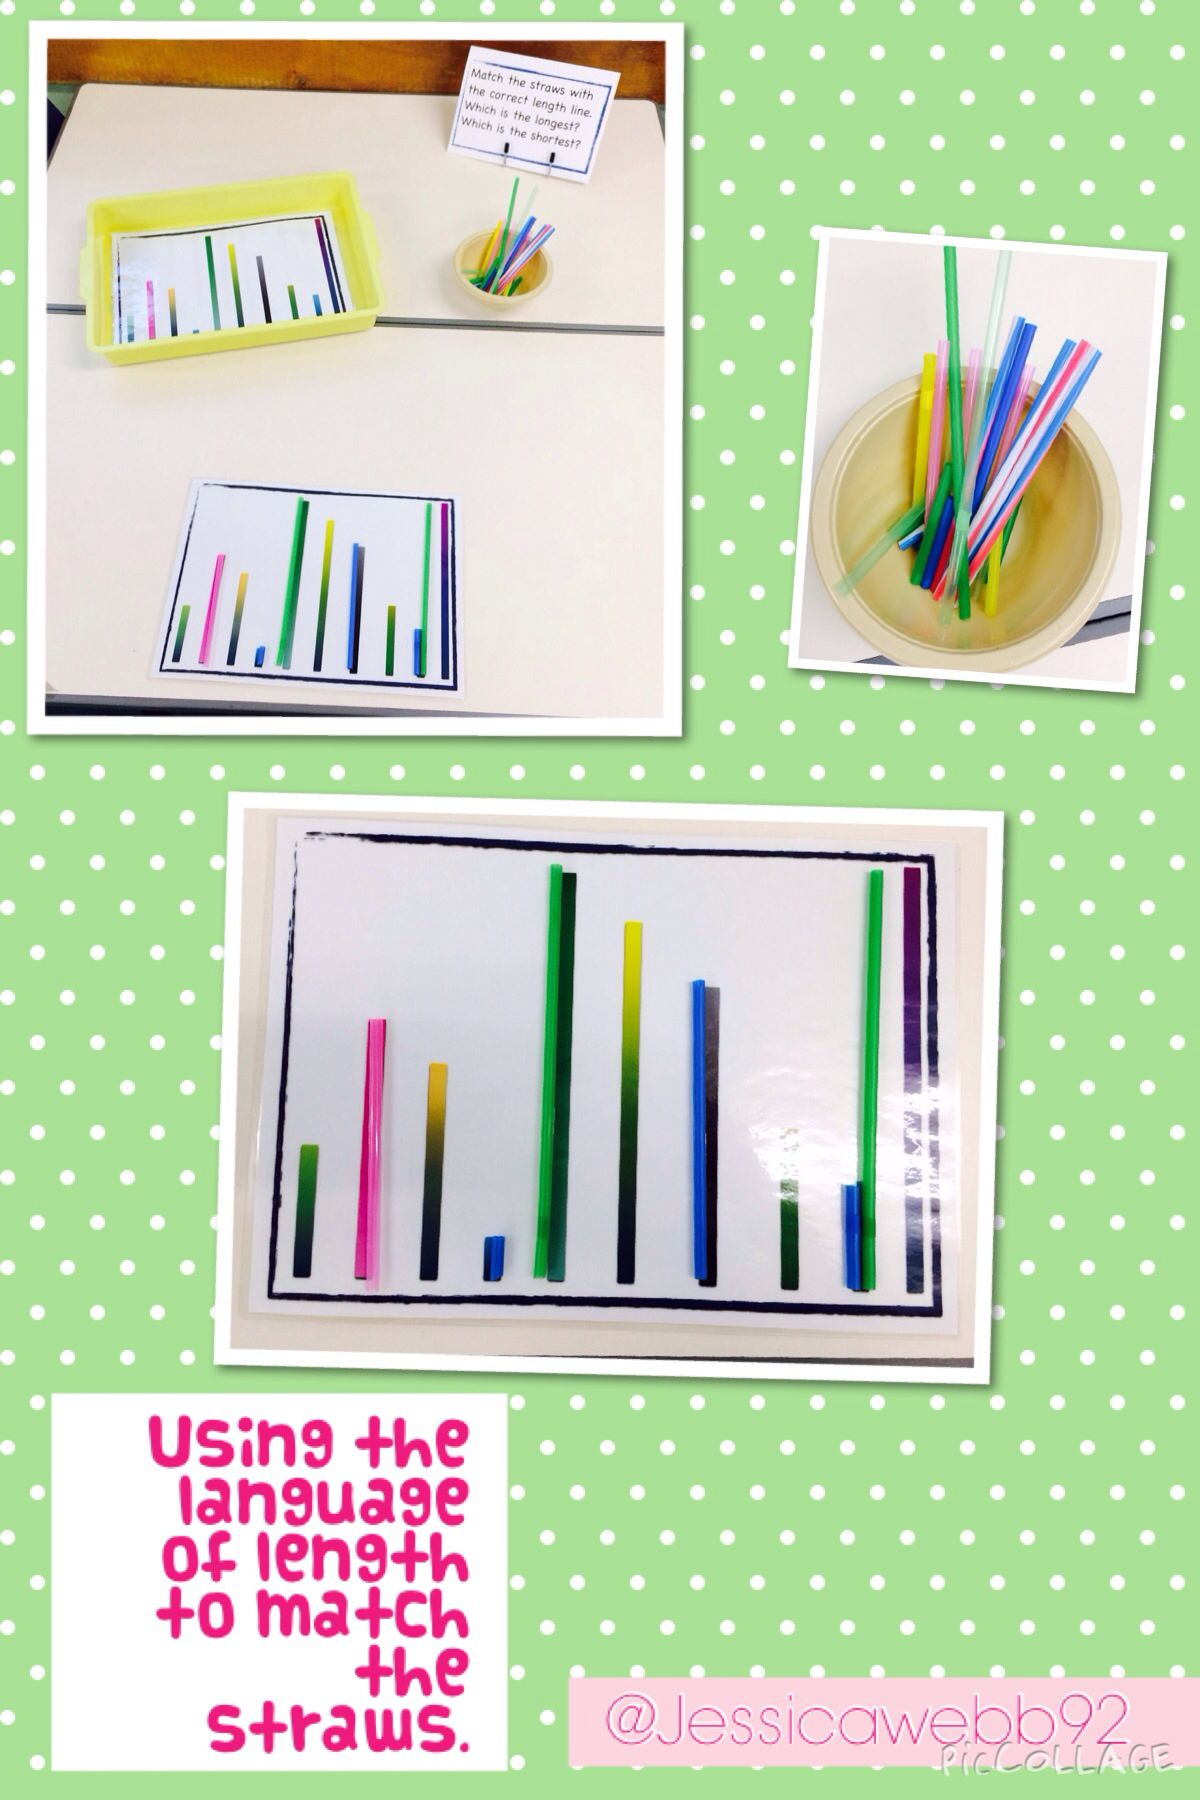 Develop The Language Of Length By Matching Different Lengths Of Straws Eyfs